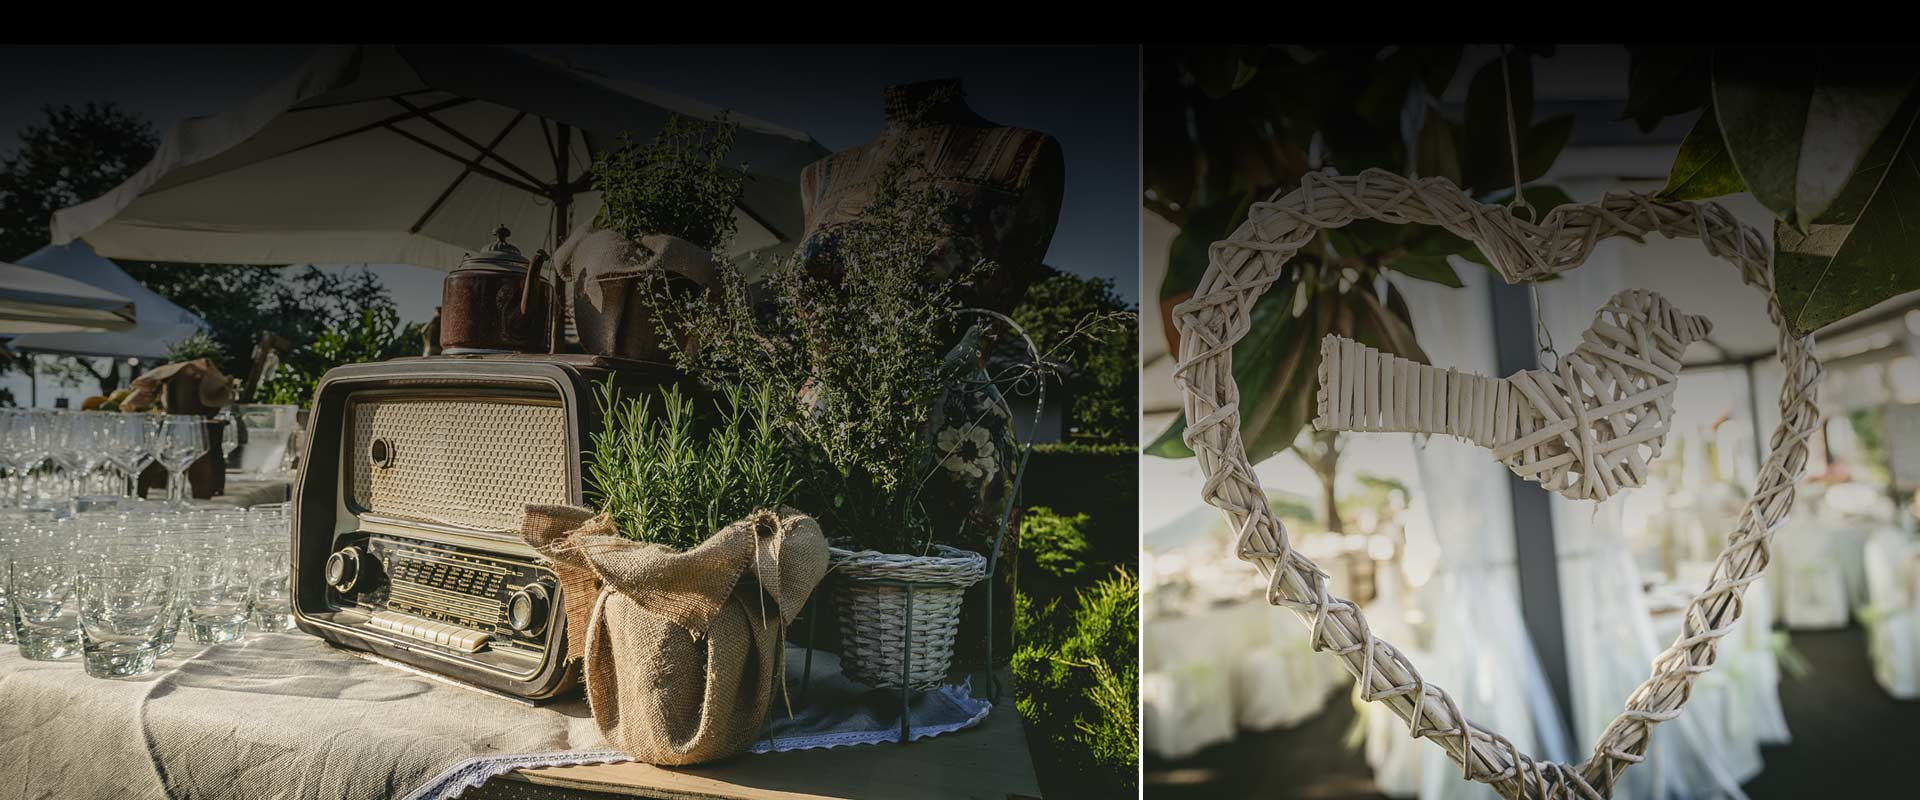 Matrimonio Country Chic Sicilia : Matrimonio country chic i giardini di ararat